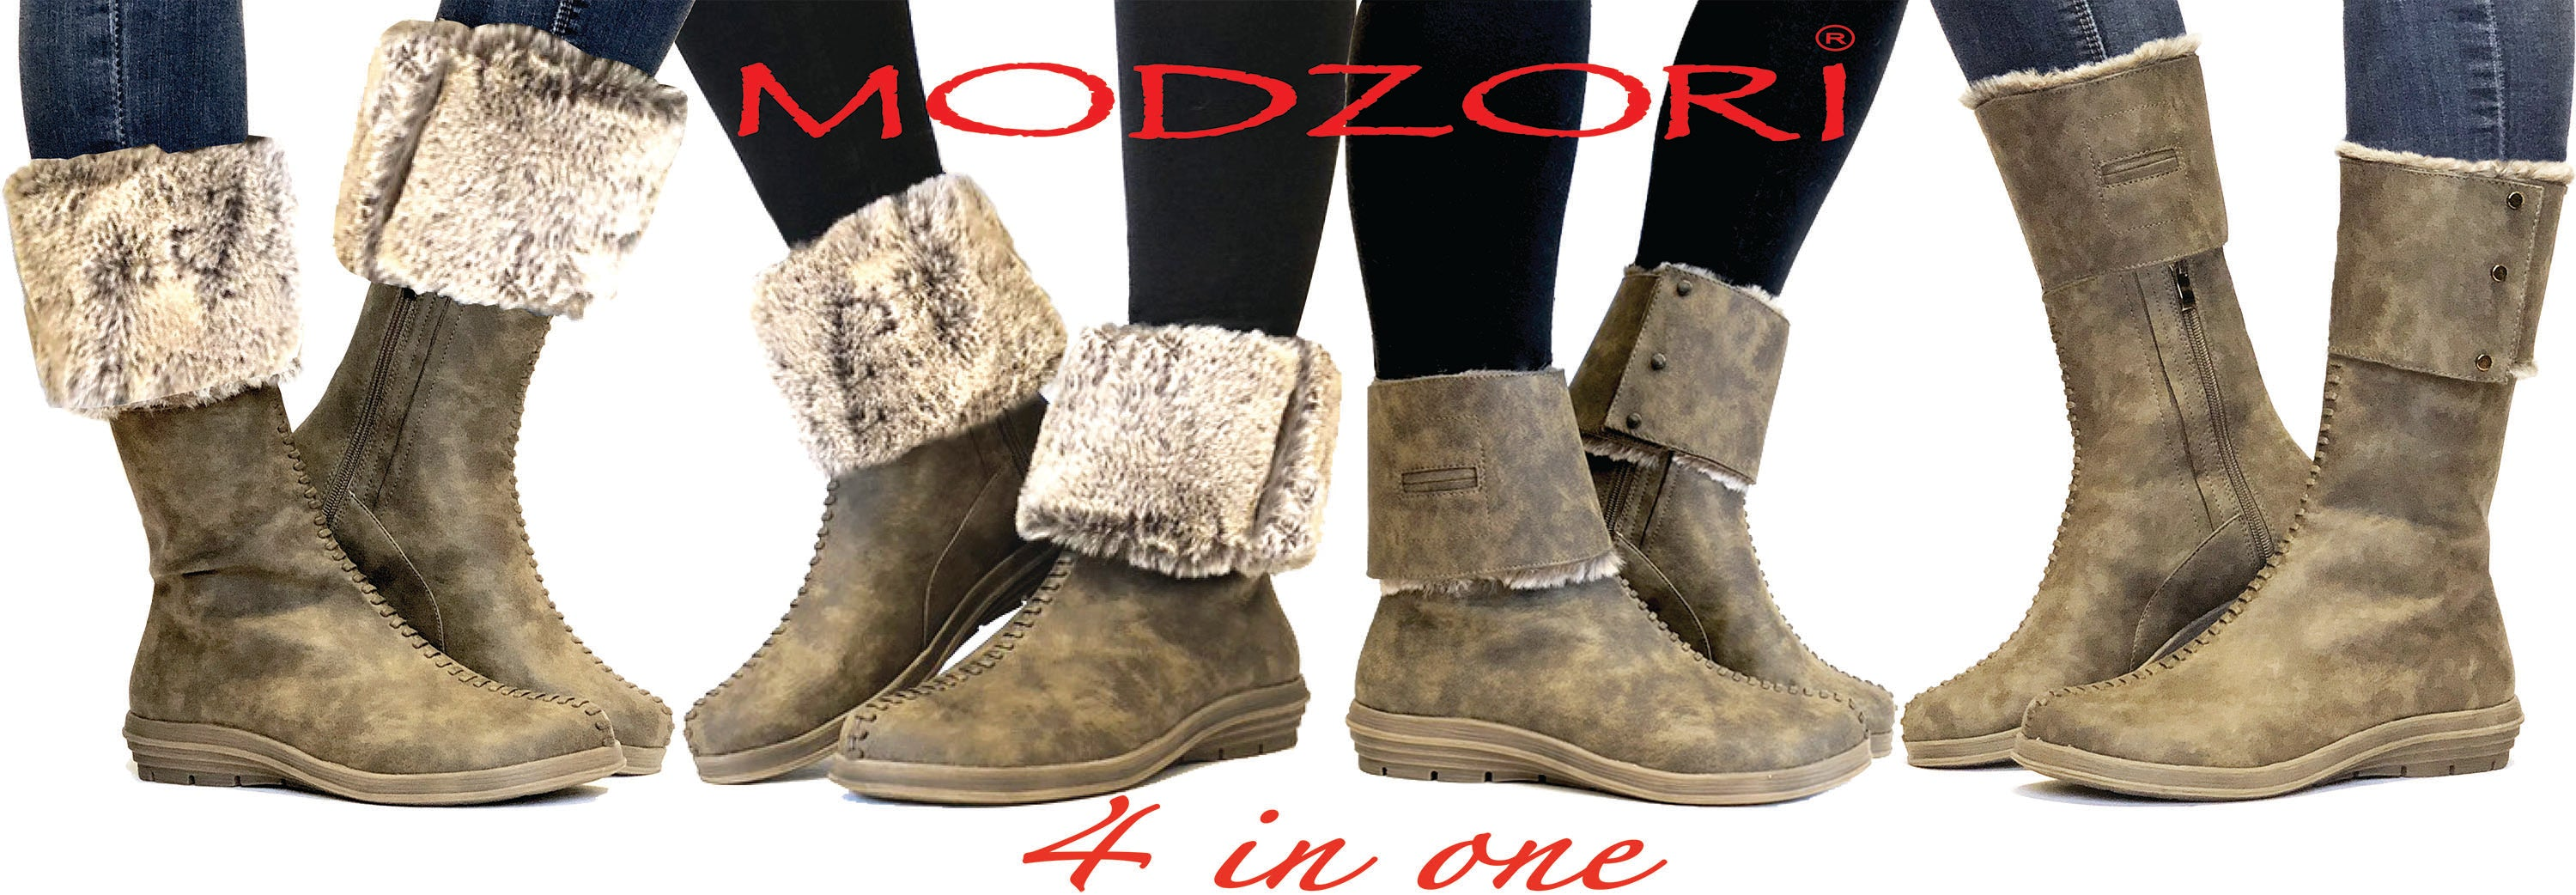 Modzori Uma 2 Brown Boot